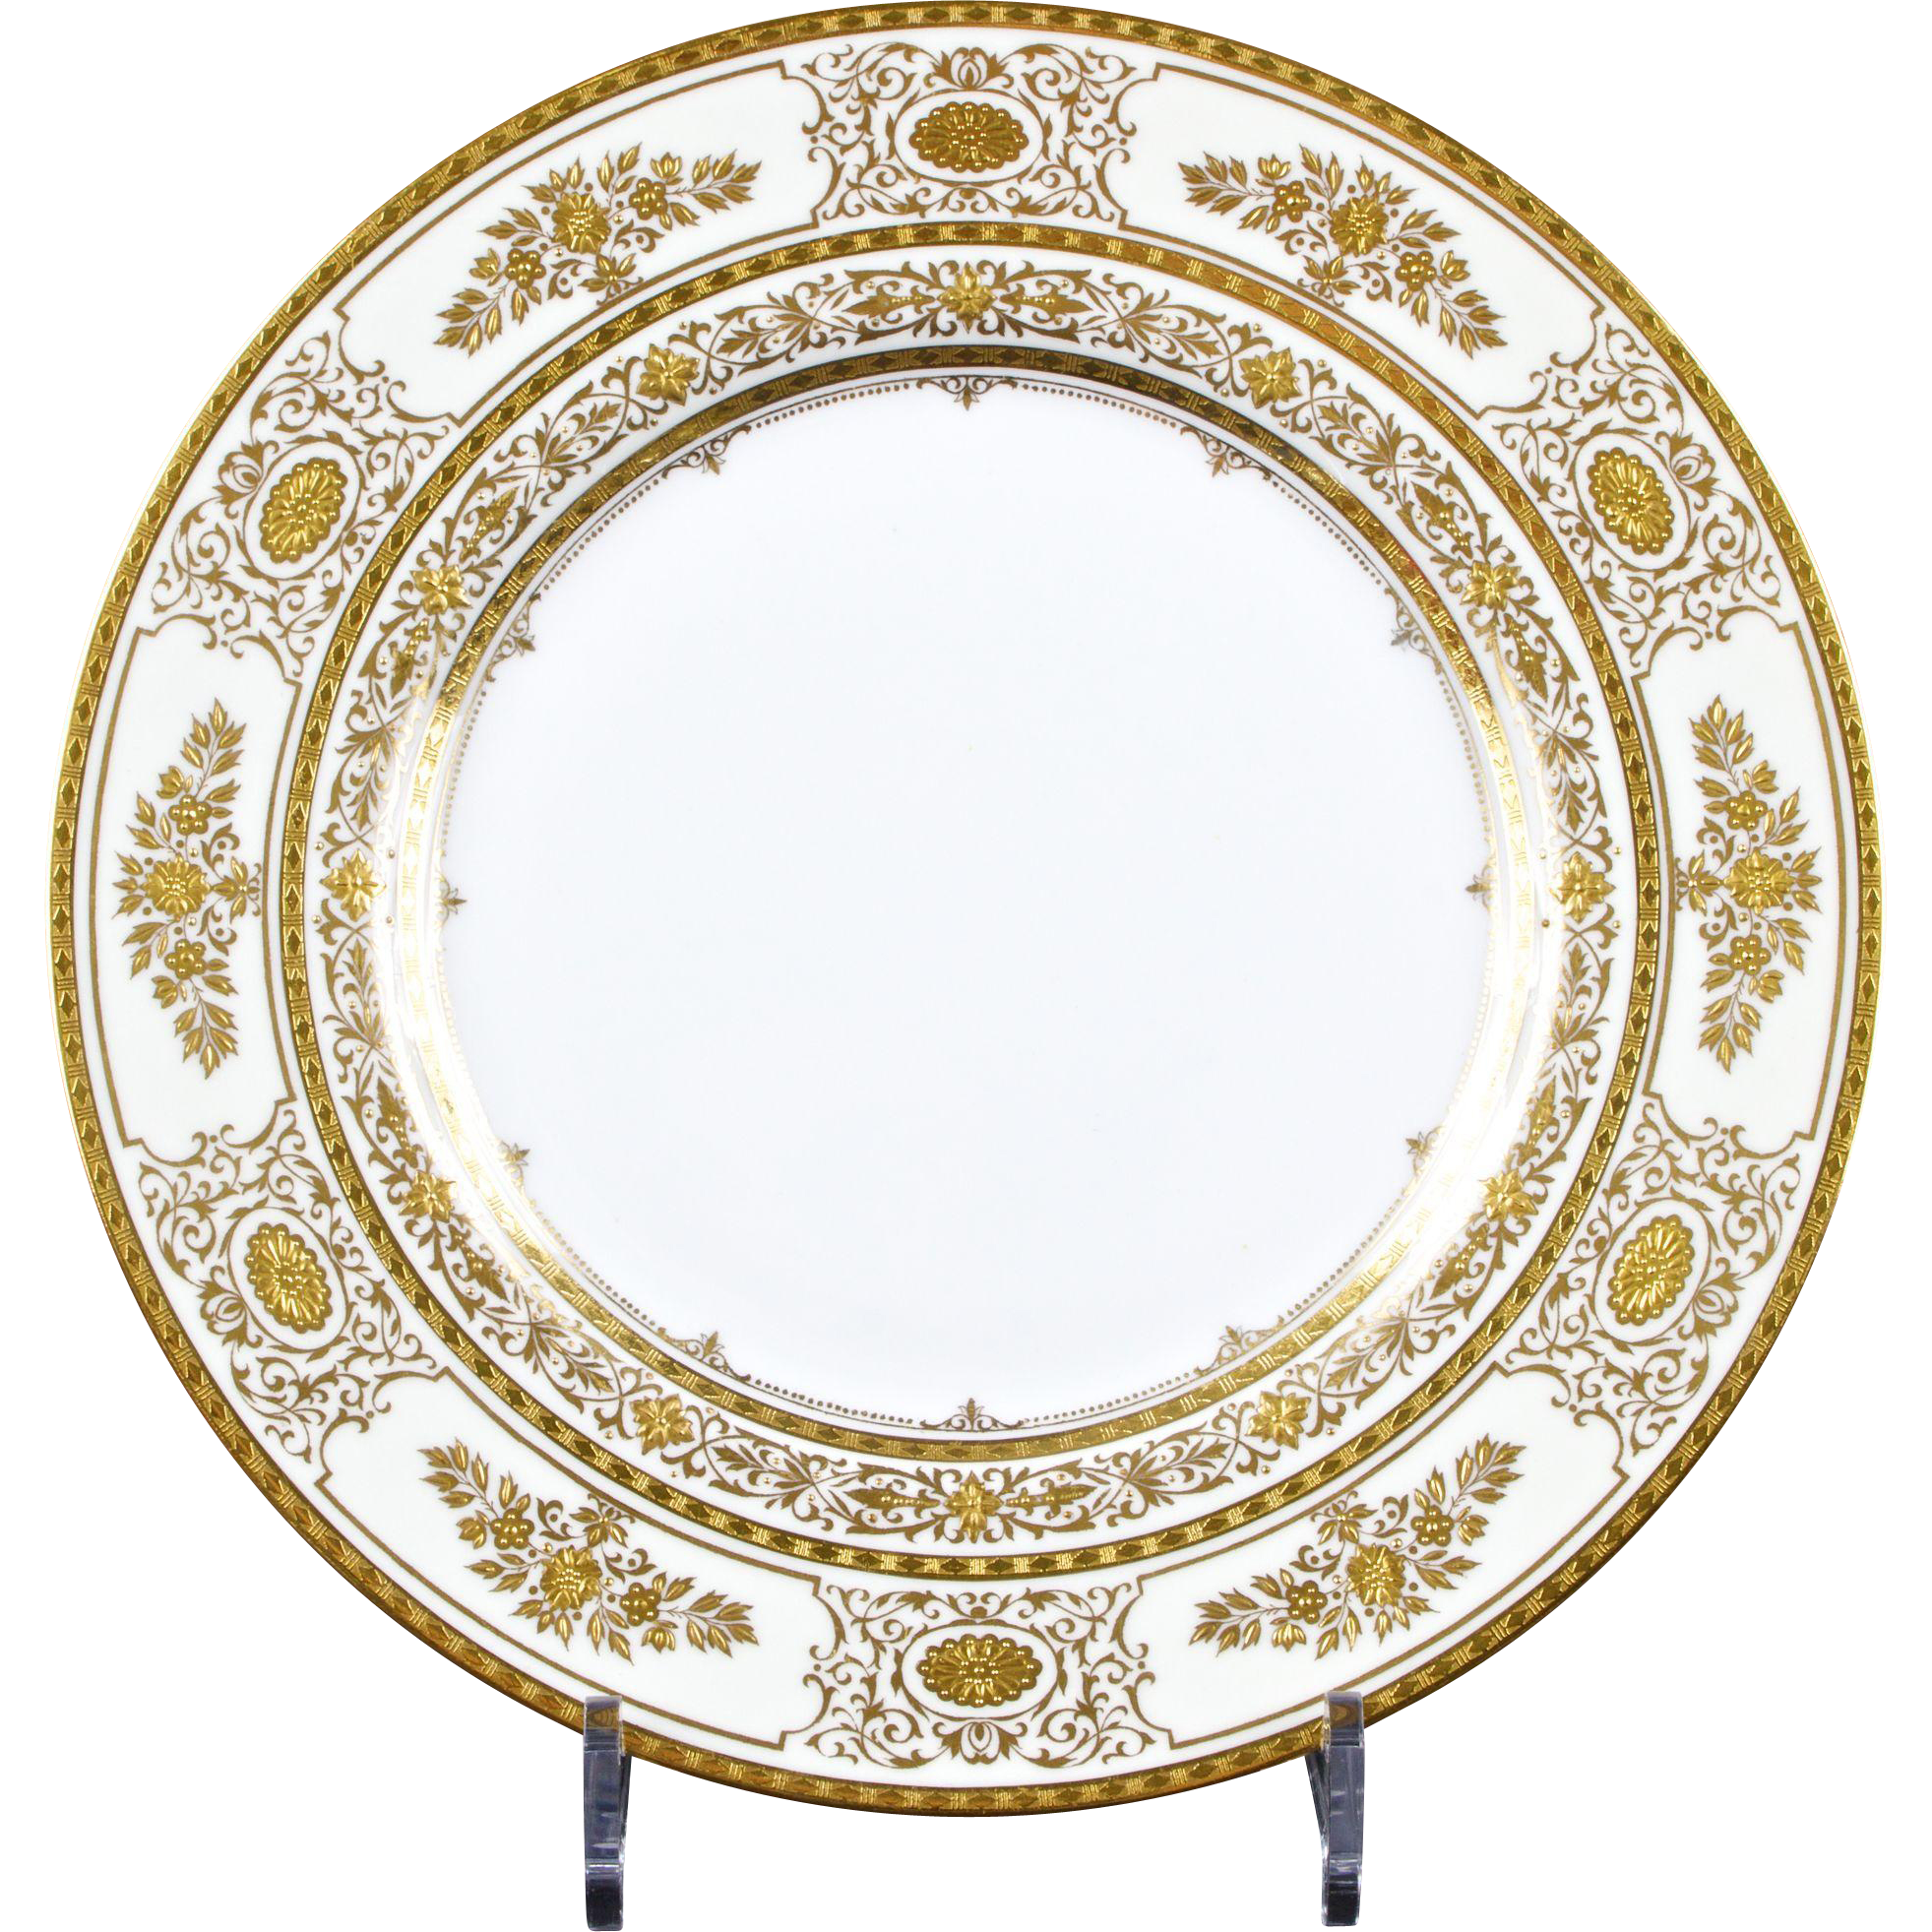 12 Minton Argyle Gold Dinner Plates Larger Service Available  Gilded Age Dining | Ruby Lane  sc 1 st  Ruby Lane & 12 Minton Argyle Gold Dinner Plates Larger Service Available ...